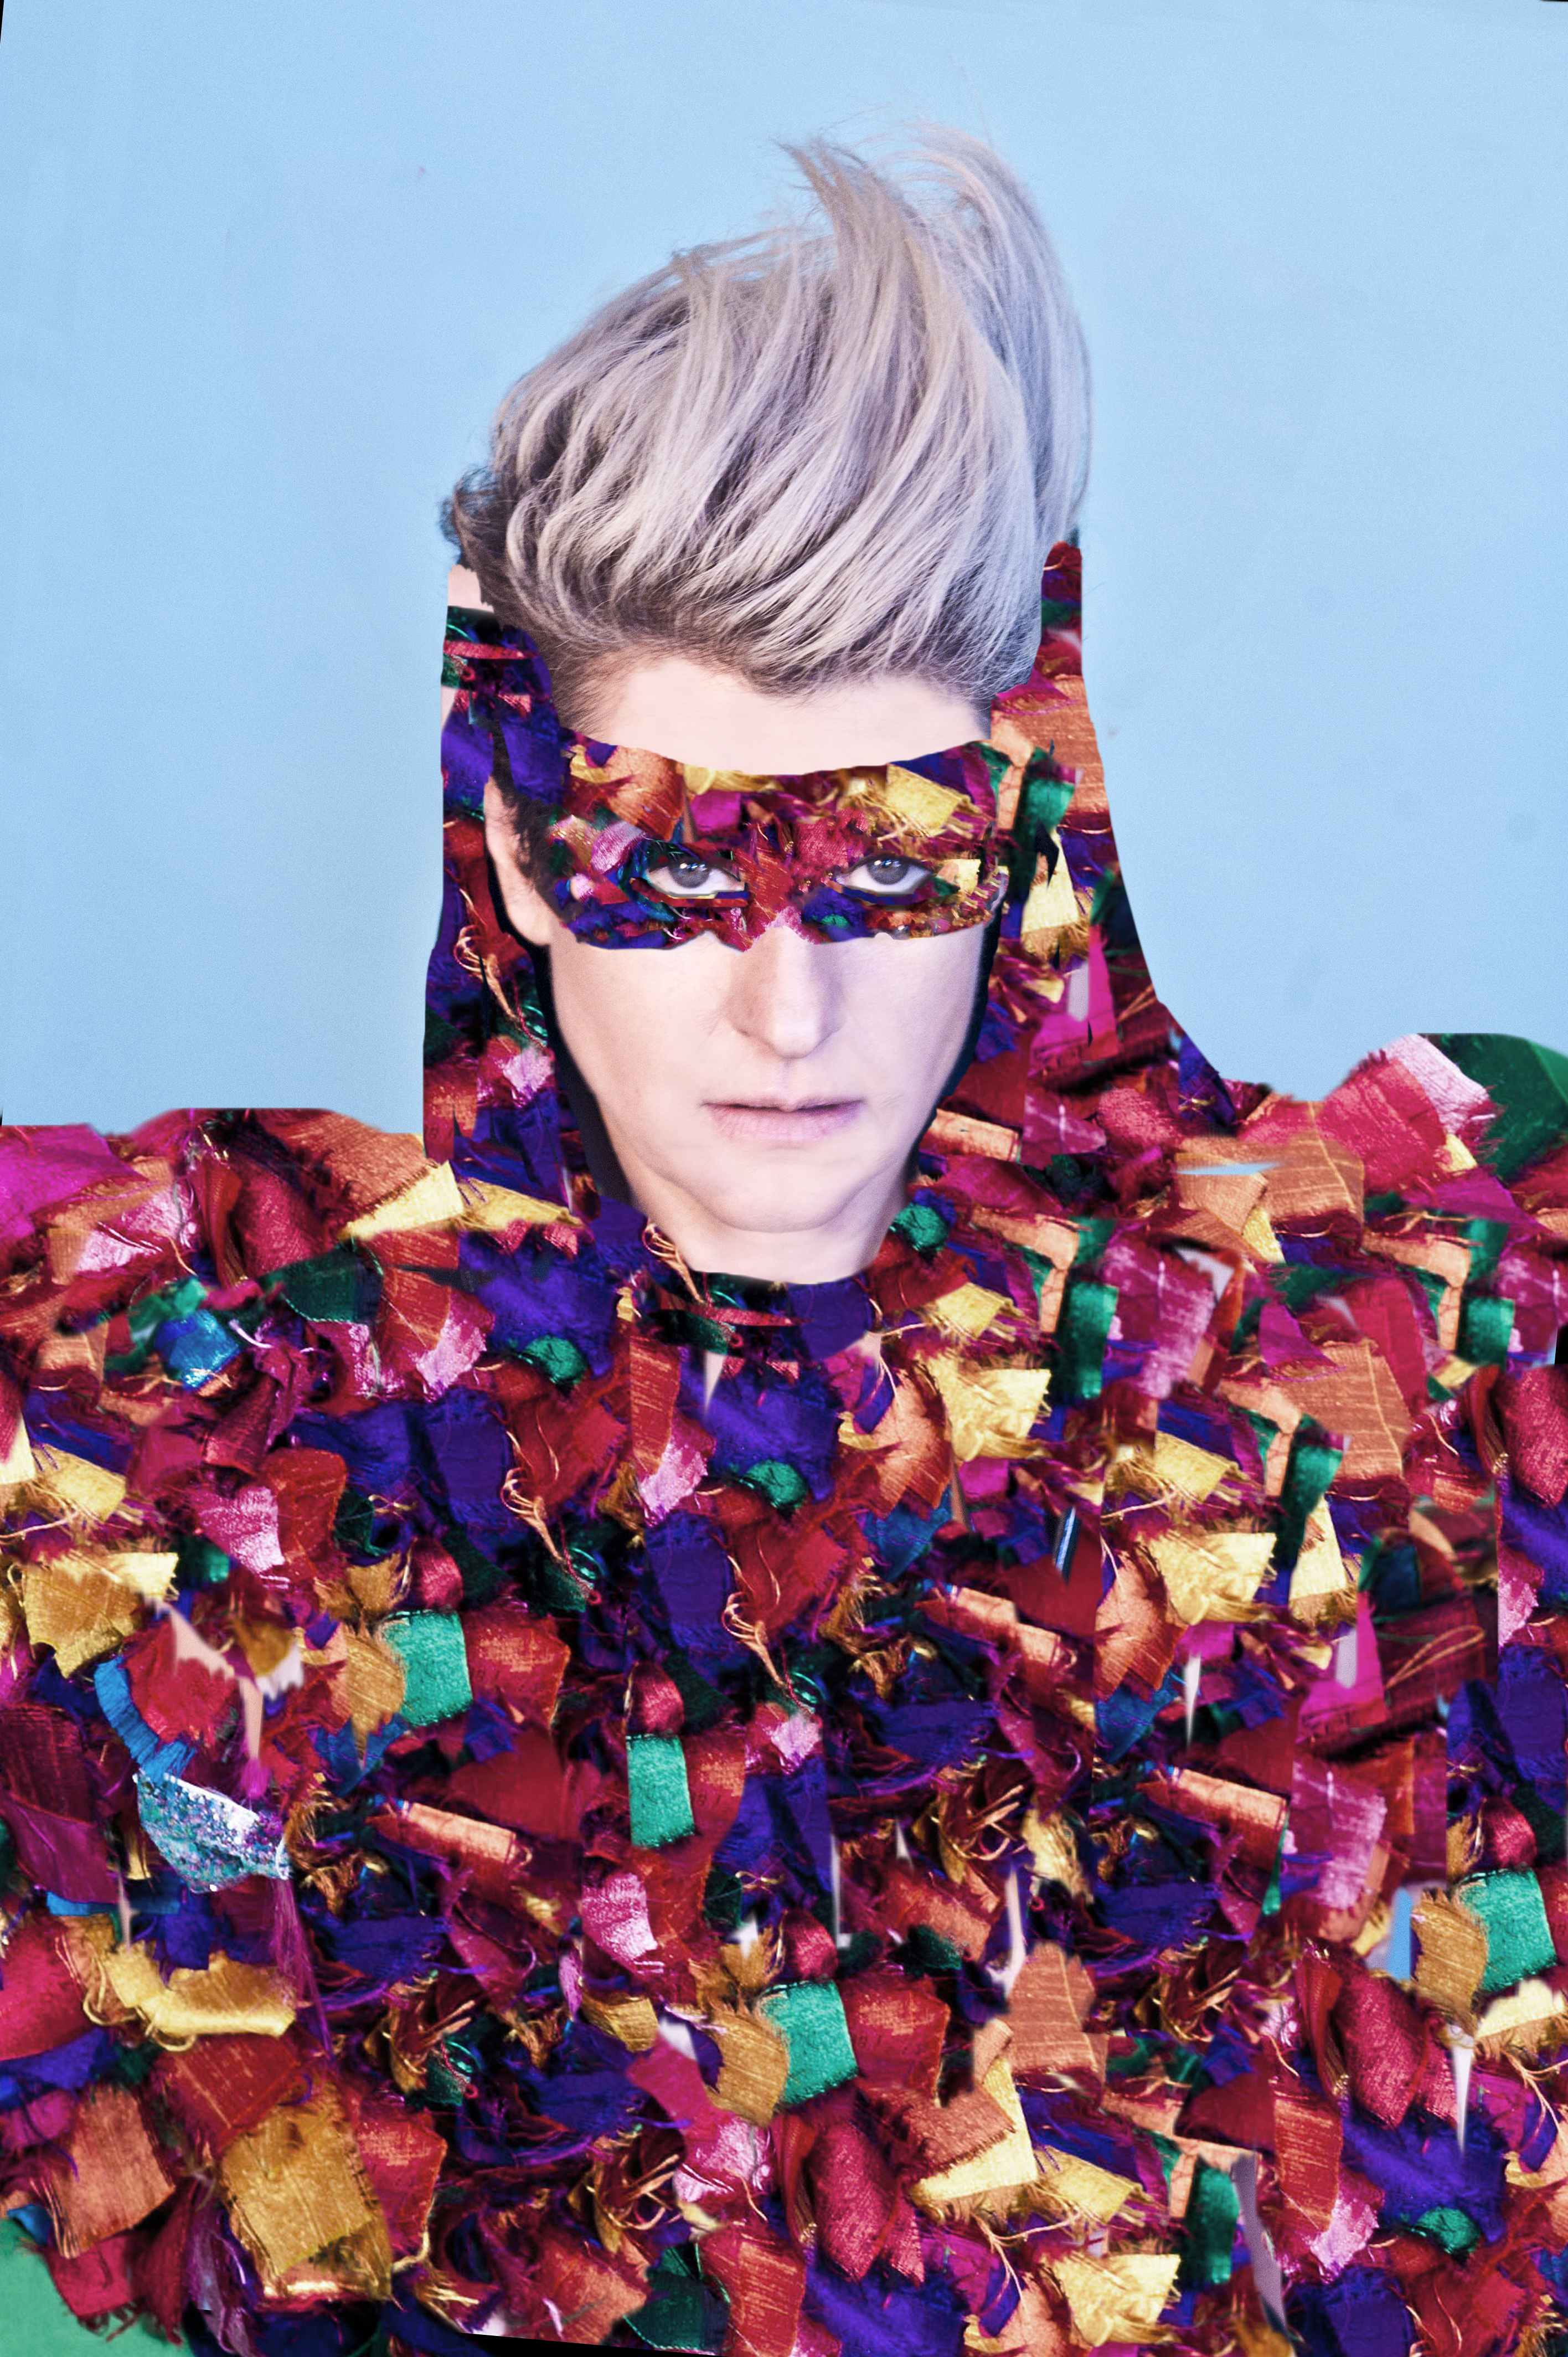 Peaches' new album Rub is available now.